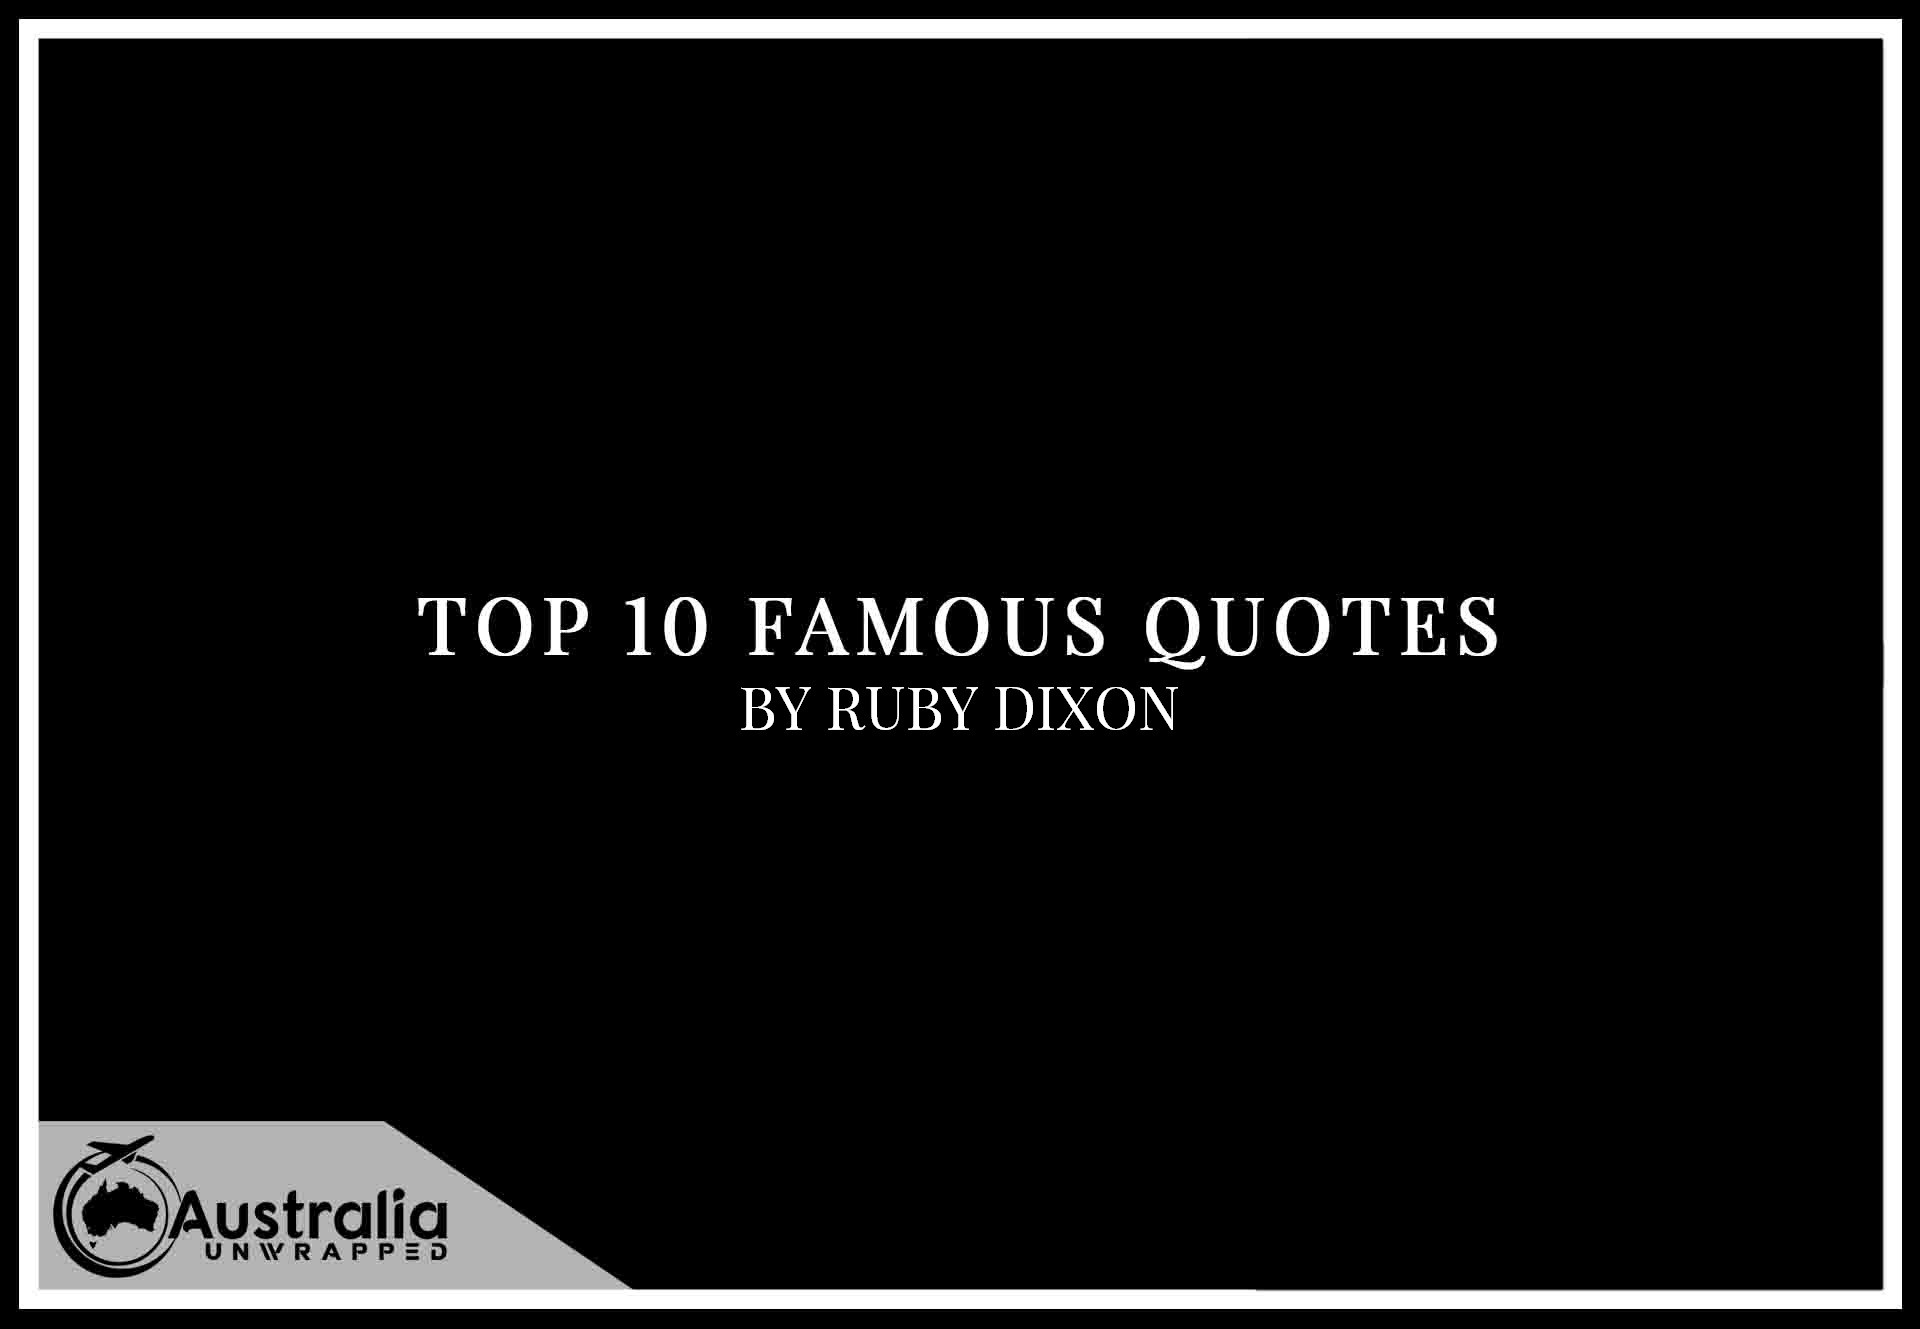 Top 10 Famous Quotes by Author Ruby Dixon